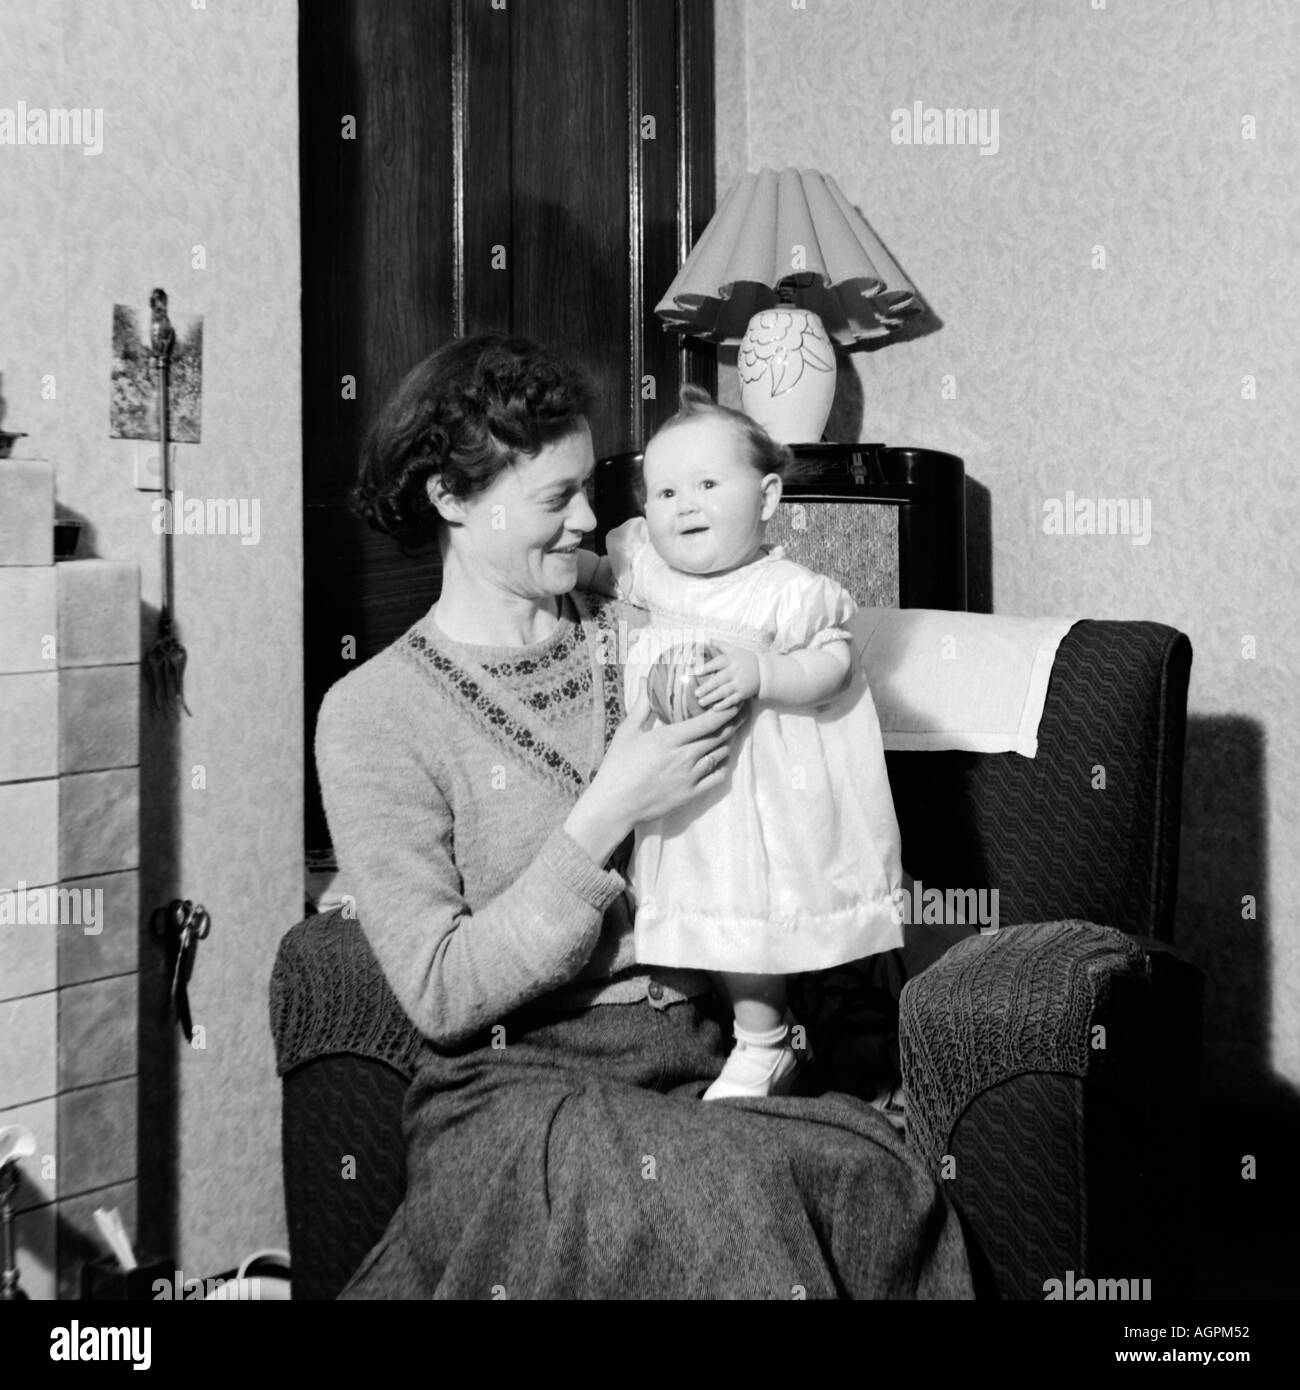 OLD VINTAGE FAMILY SNAPSHOT PHOTOGRAPH OF MOTHER RELAXING AND PLAYING WITH BABY DAUGHTER - Stock Image